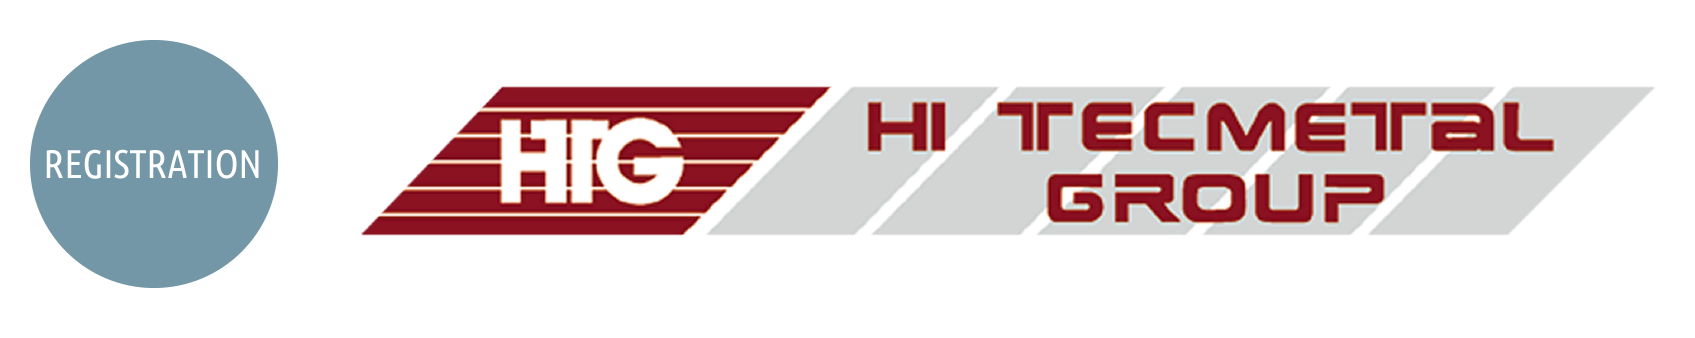 HTG - Hi Tecmetal Group